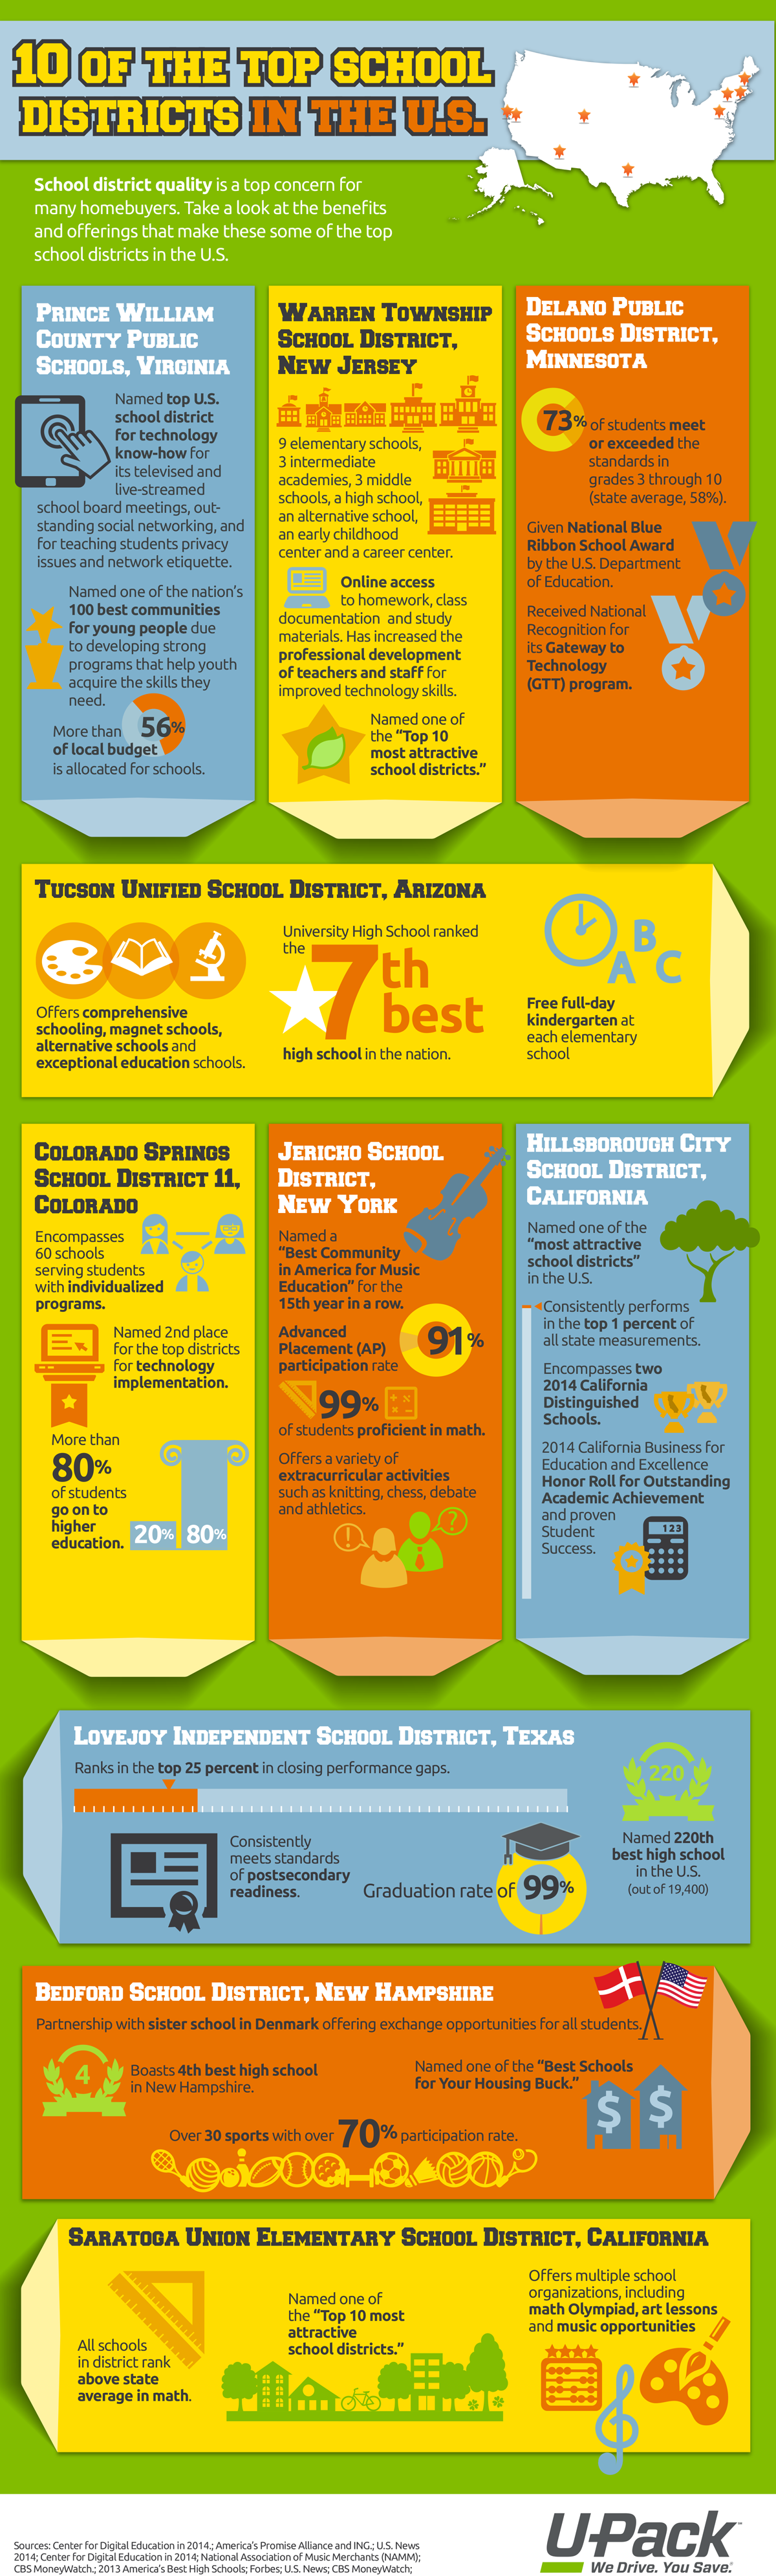 Ten of the Top School Districts Infographic